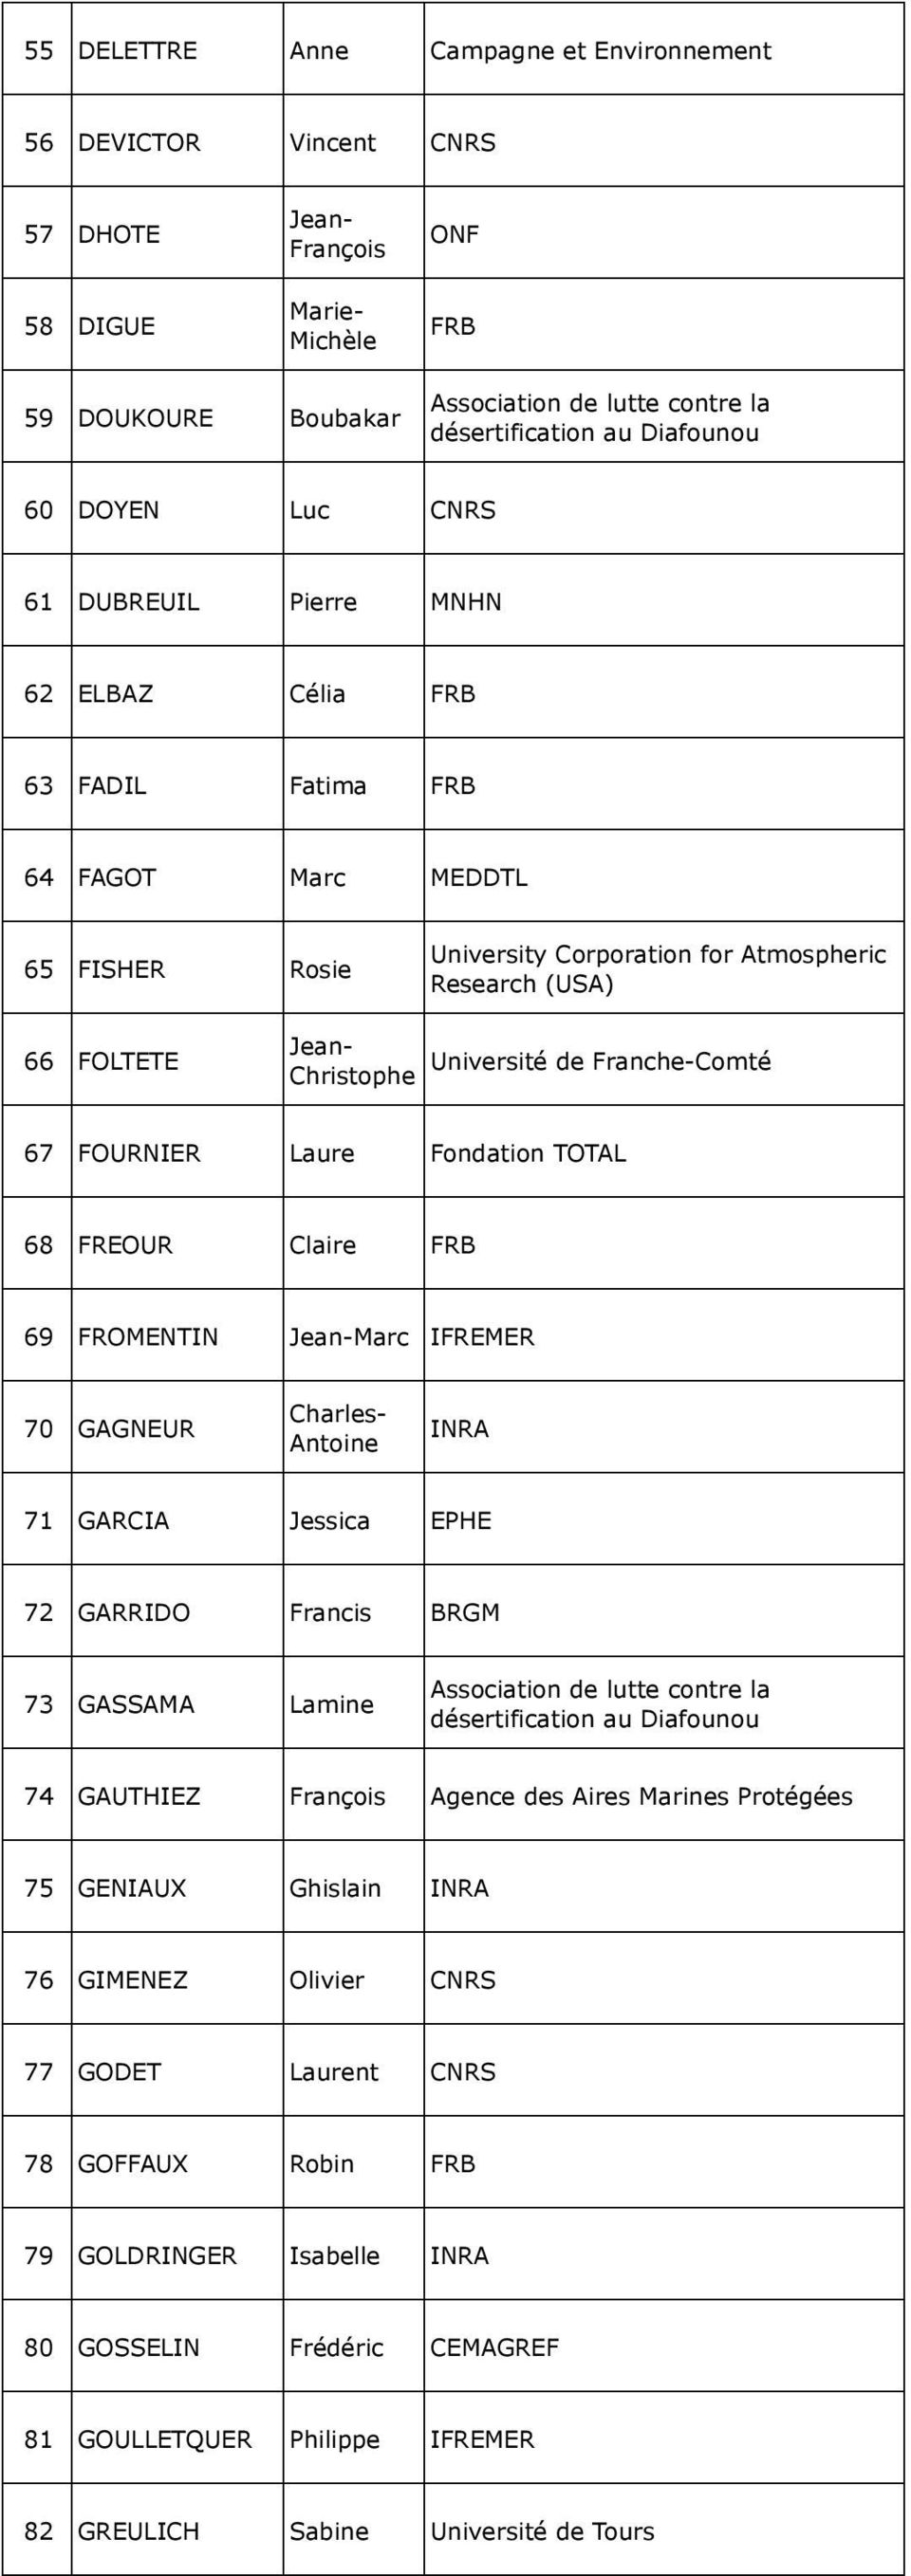 Franche-Comté Christophe 67 FOURNIER Laure Fondation TOTAL 68 FREOUR Claire FRB 69 FROMENTIN Marc IFREMER 70 GAGNEUR Charles- Antoine INRA 71 GARCIA Jessica EPHE 72 GARRIDO Francis BRGM 73 GASSAMA